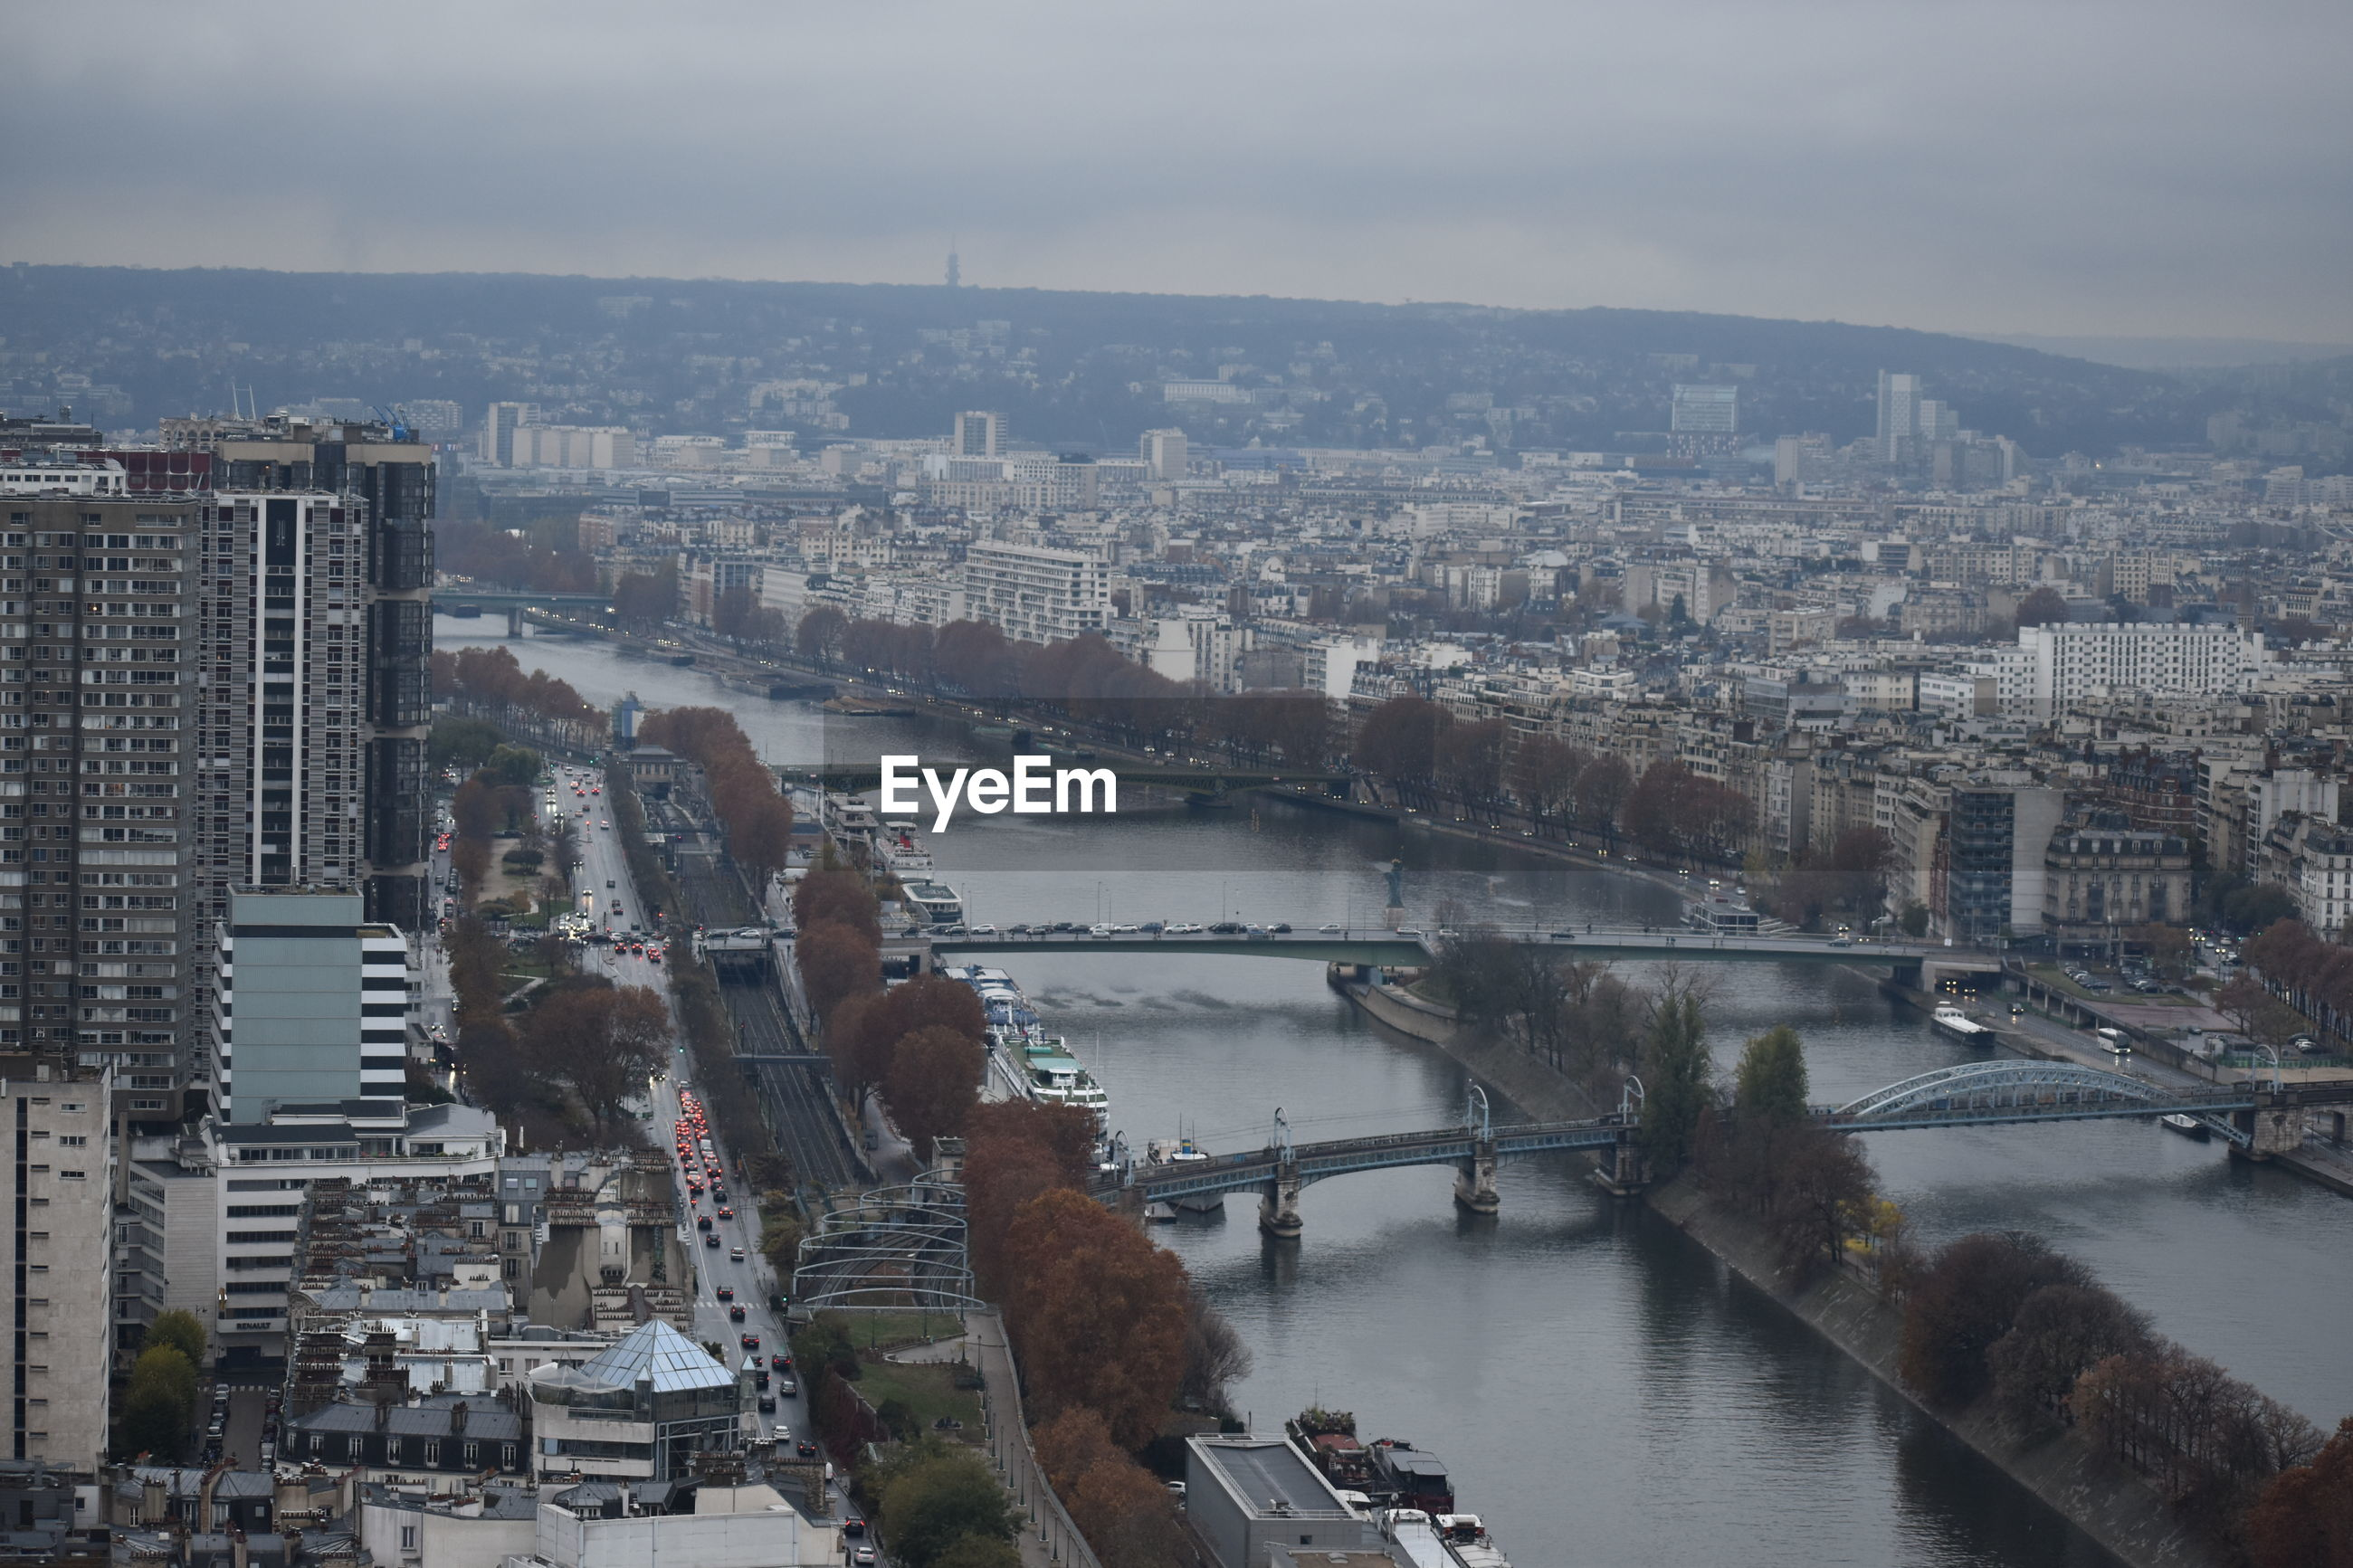 HIGH ANGLE VIEW OF RIVER AND BUILDINGS IN CITY